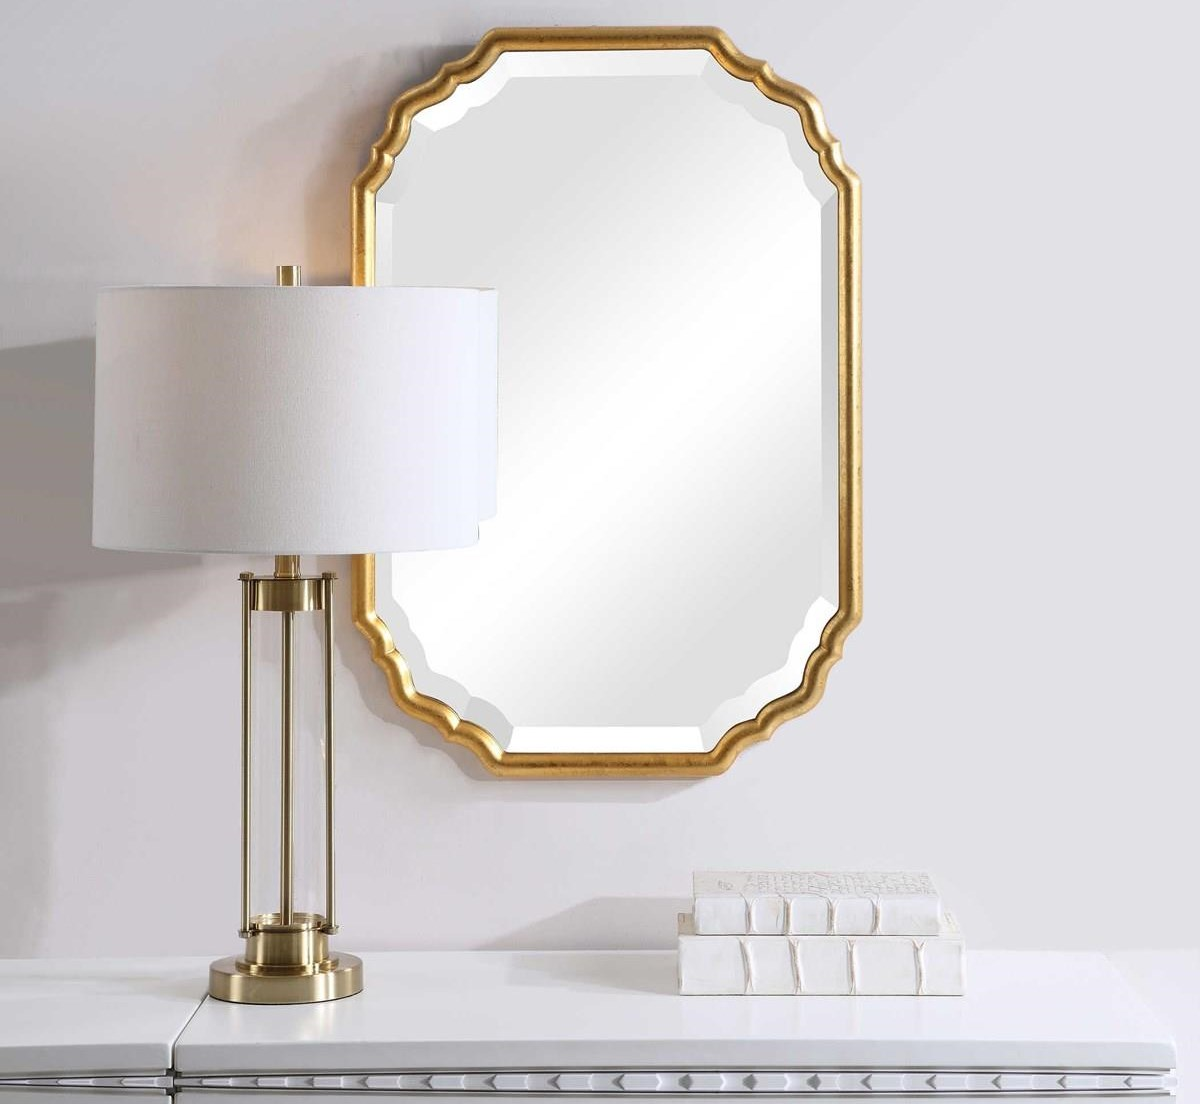 Mirrors KINSLEY WALL MIRROR by Unique at Walker's Furniture